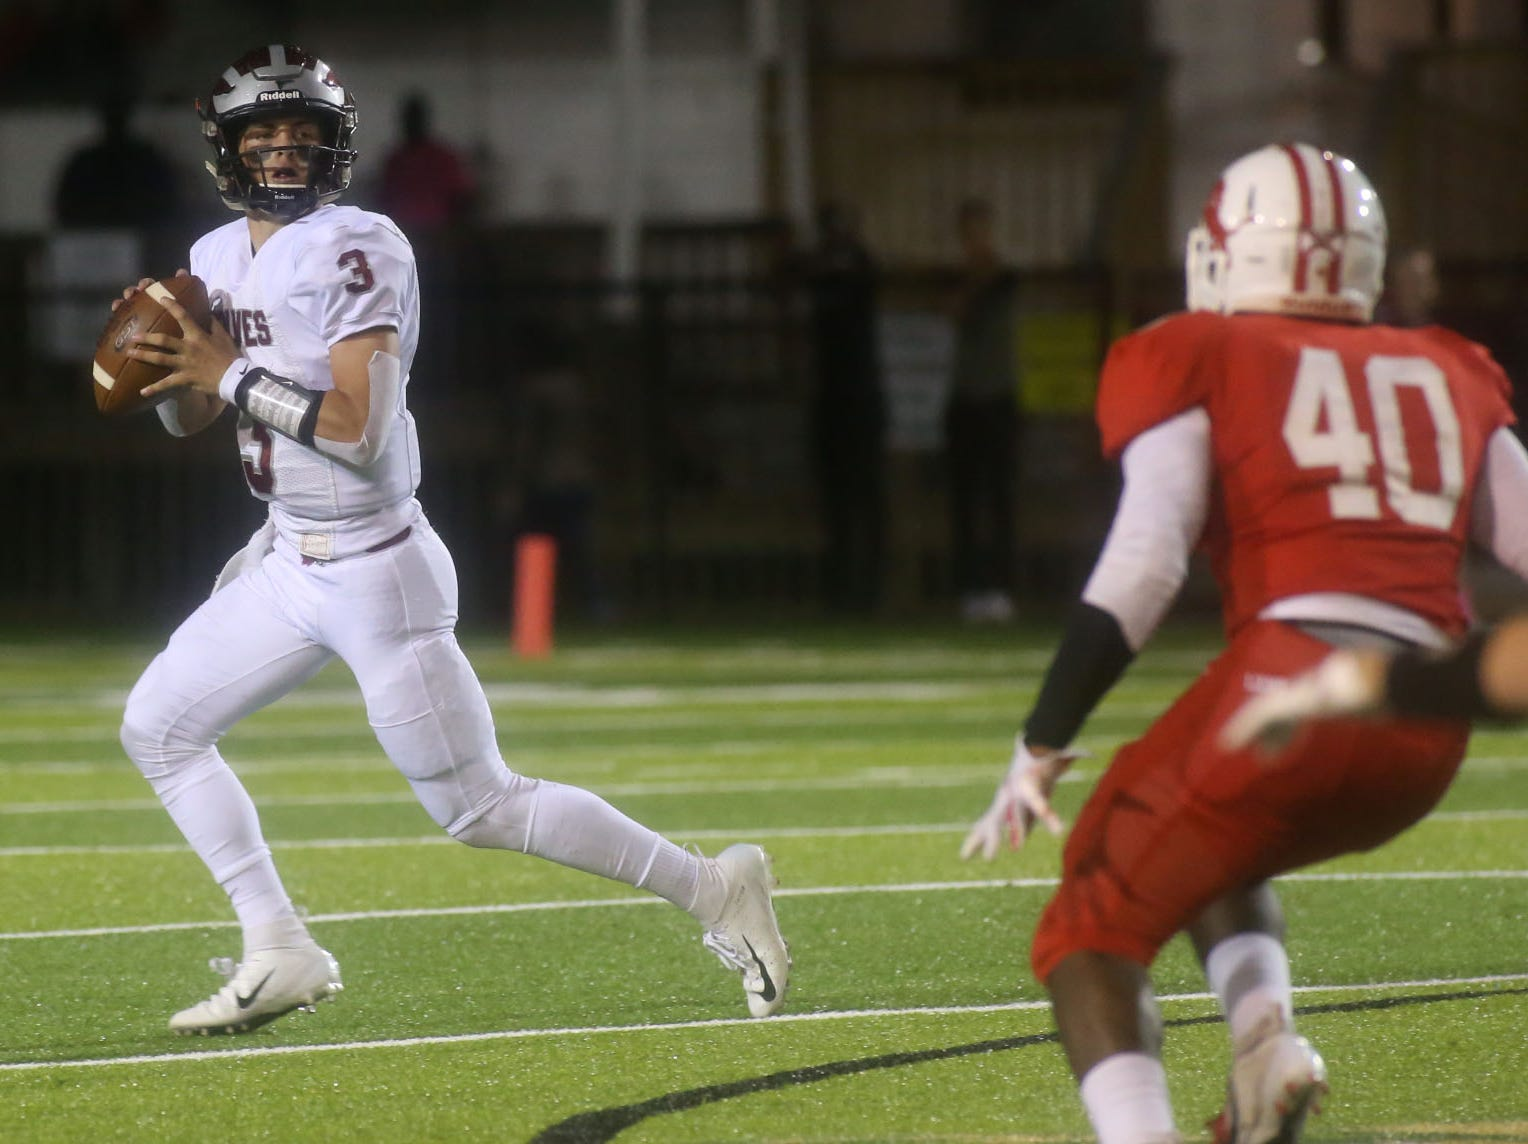 Chiles High School quarterback Garrett Greene (3) looks to pass as the Leon lions face off against the Chiles timberwolves in high school football at Gene Cox Stadium on Friday, Oct. 26, 2018.